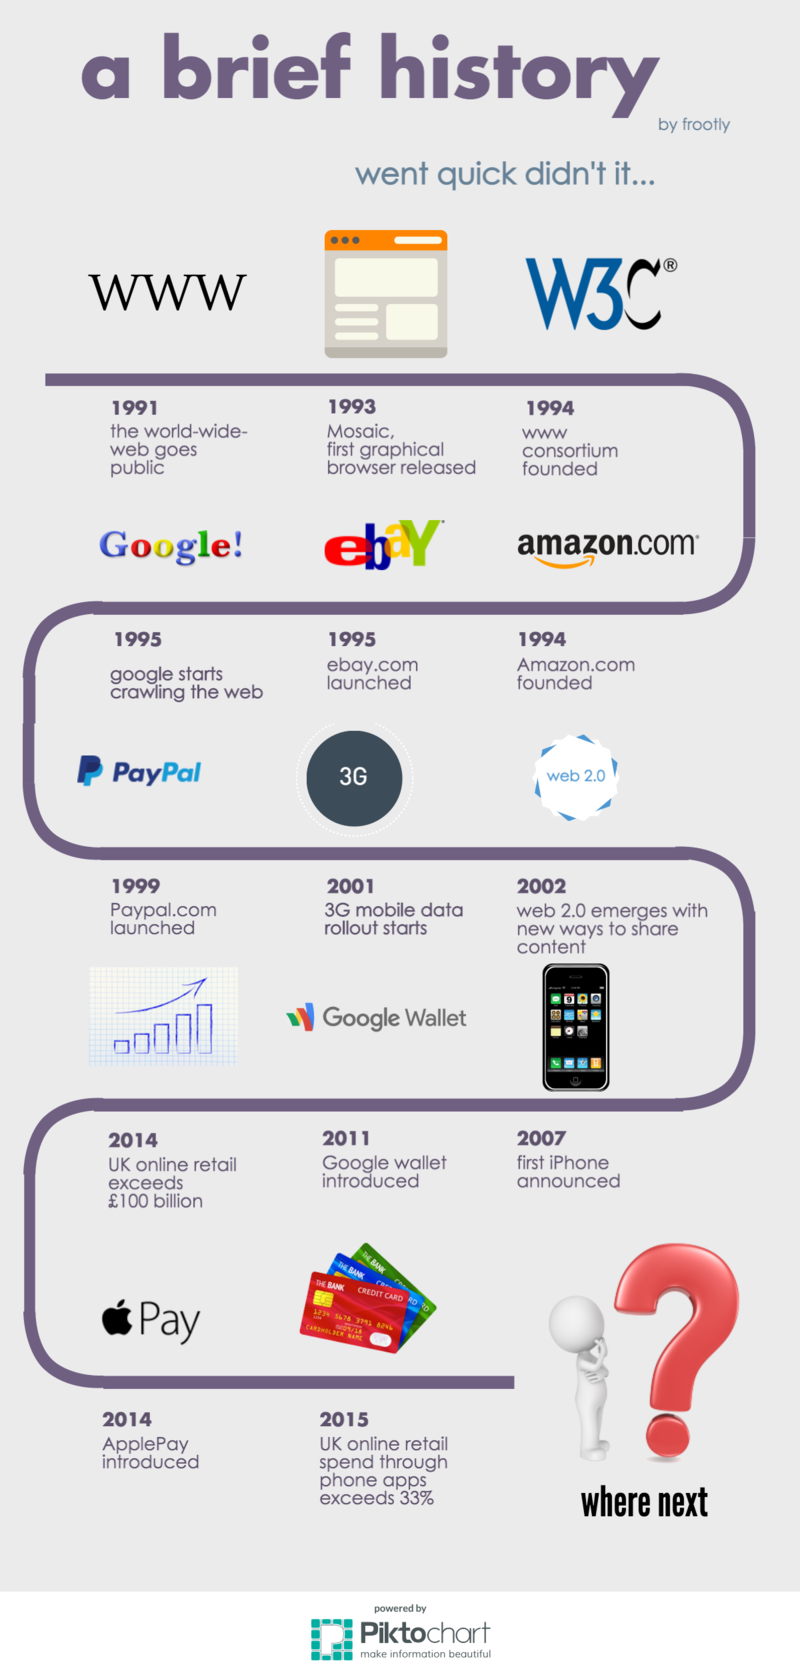 image showing timeline of the evolution of ecommerce